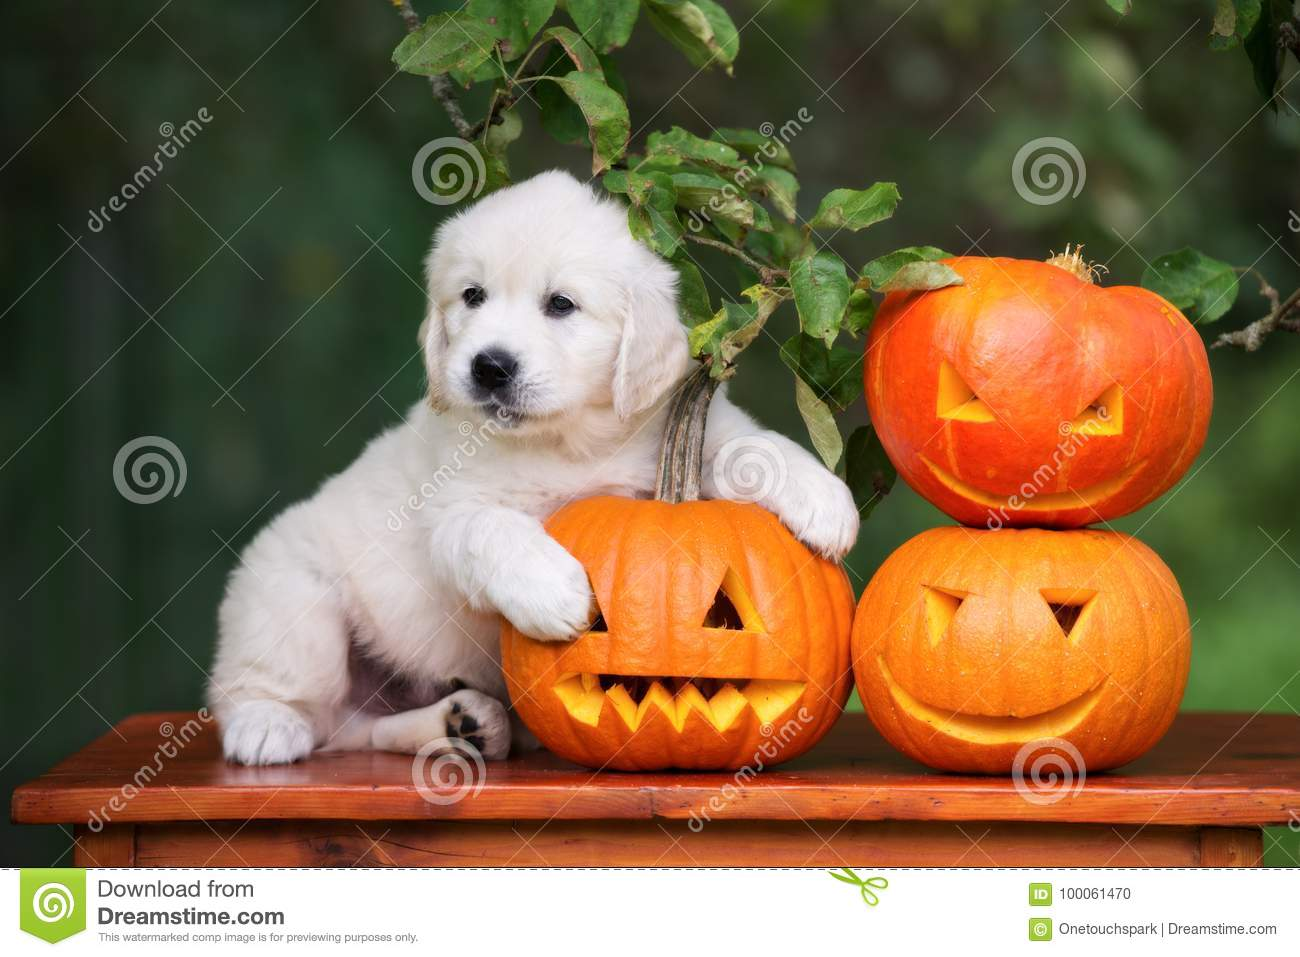 download golden retriever puppy with halloween pumpkins stock photo image of canine autumn